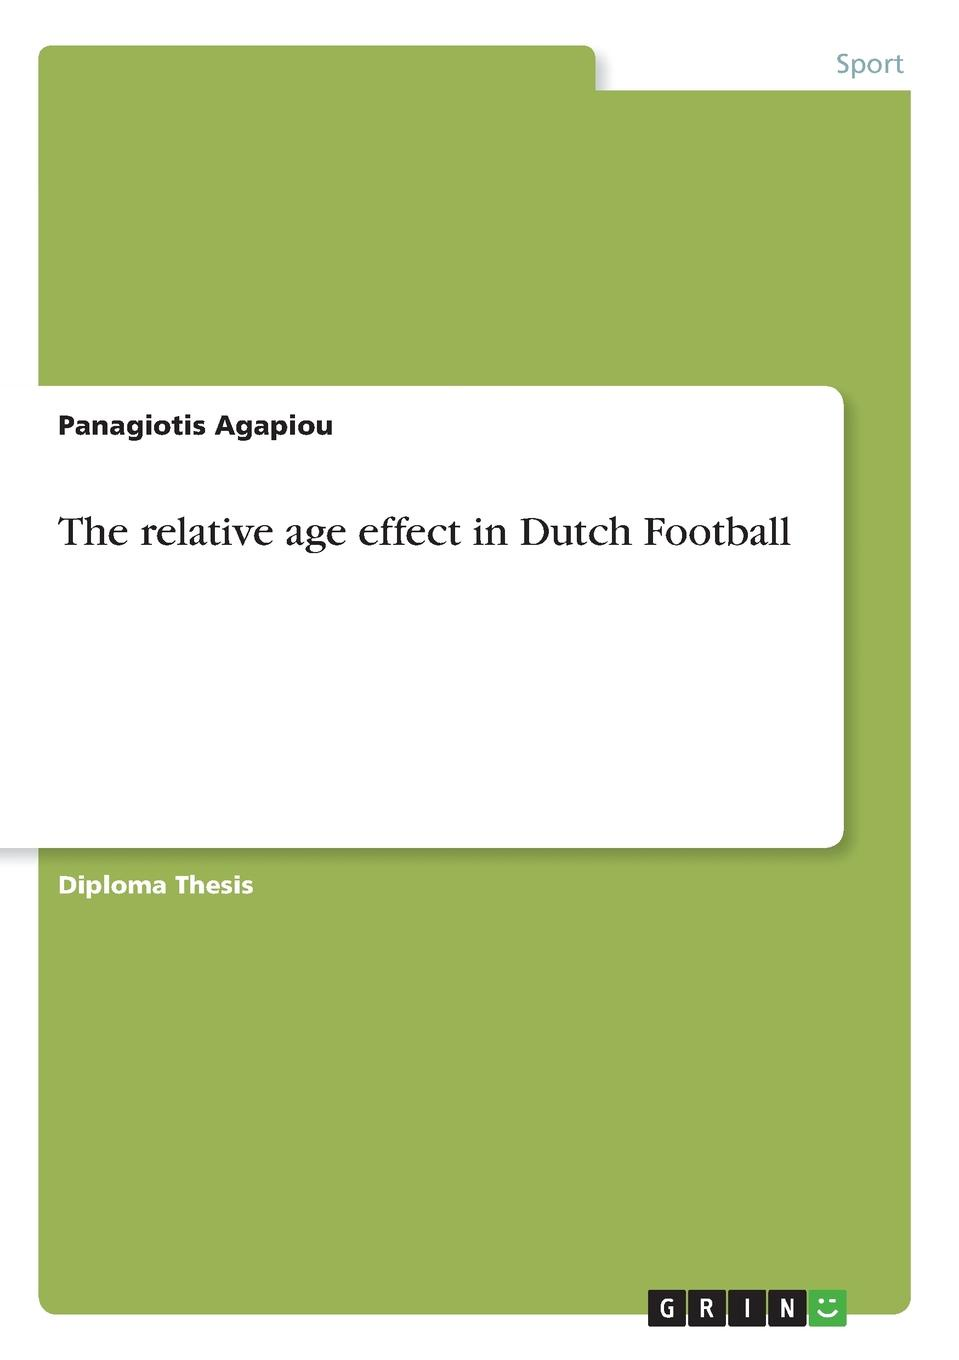 Panagiotis Agapiou The relative age effect in Dutch Football nina rae springfields the power of hope